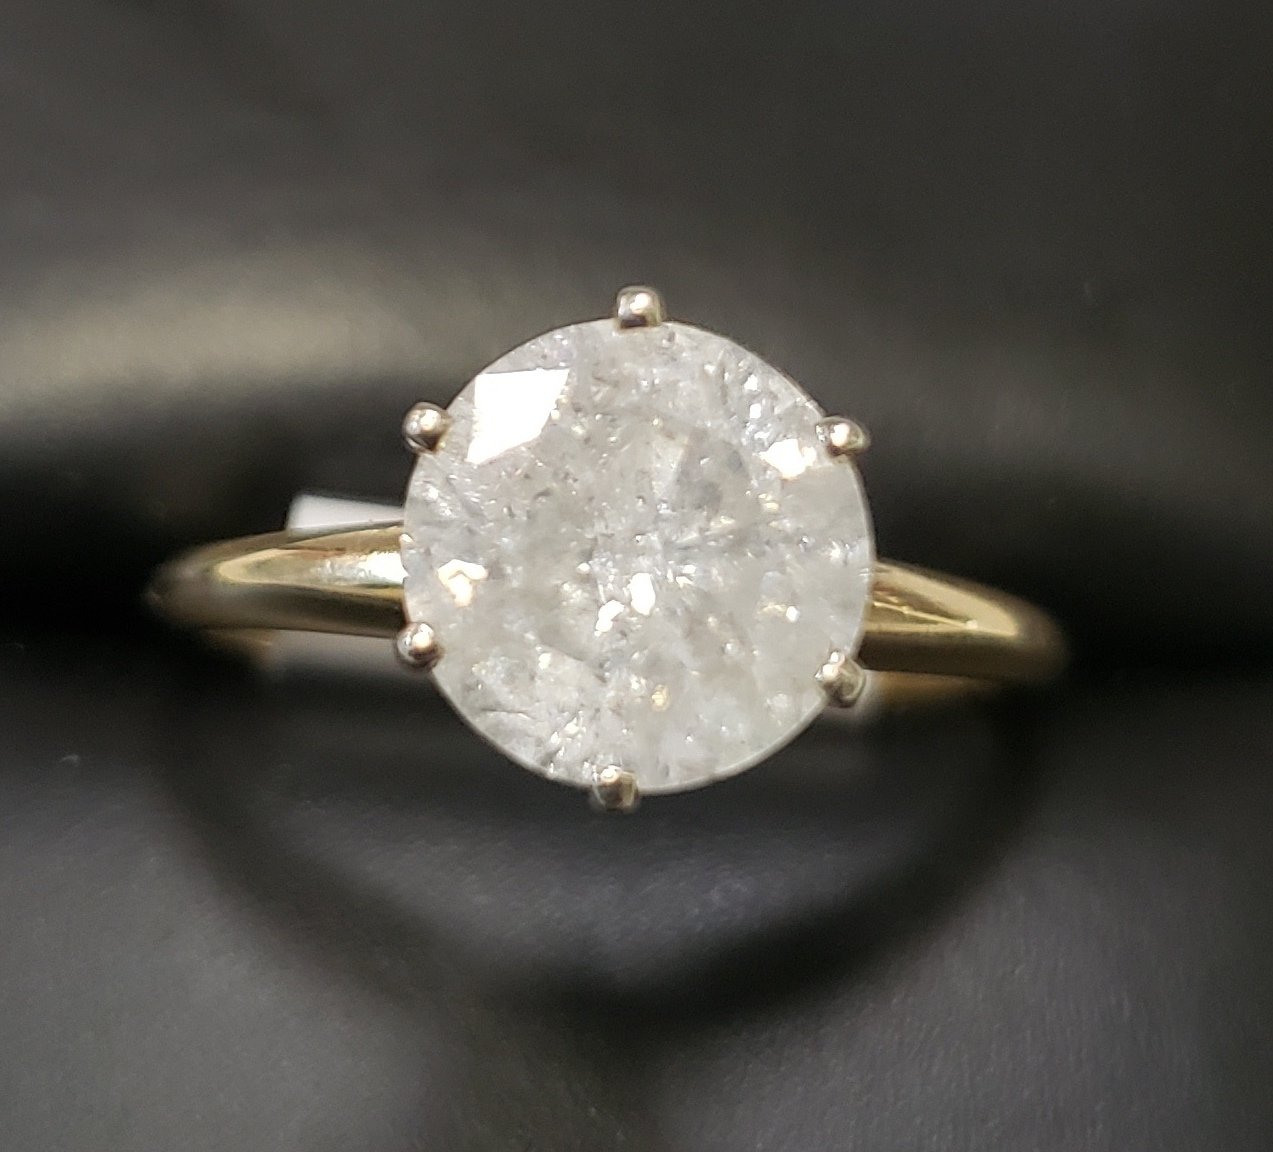 10KT SIZE 6.5 YELLOW GOLD 1-3/4 CTW ROUND SOLITAIRE DIAMOND RING